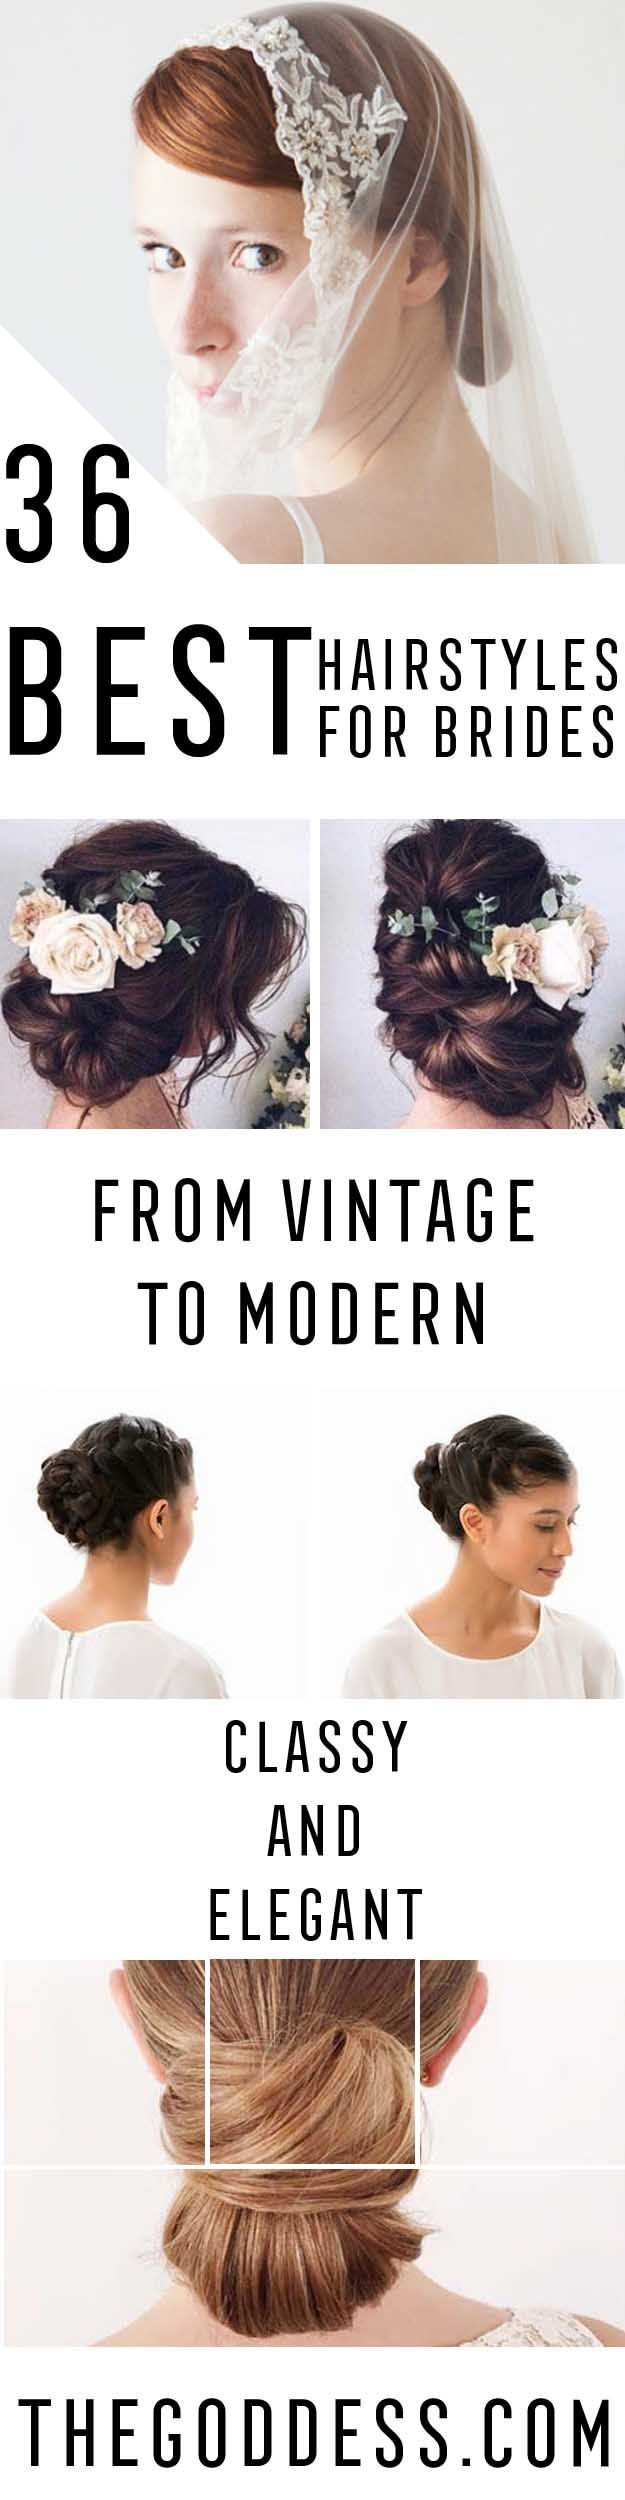 best hairstyles for brides hairstyles for long hair pinterest